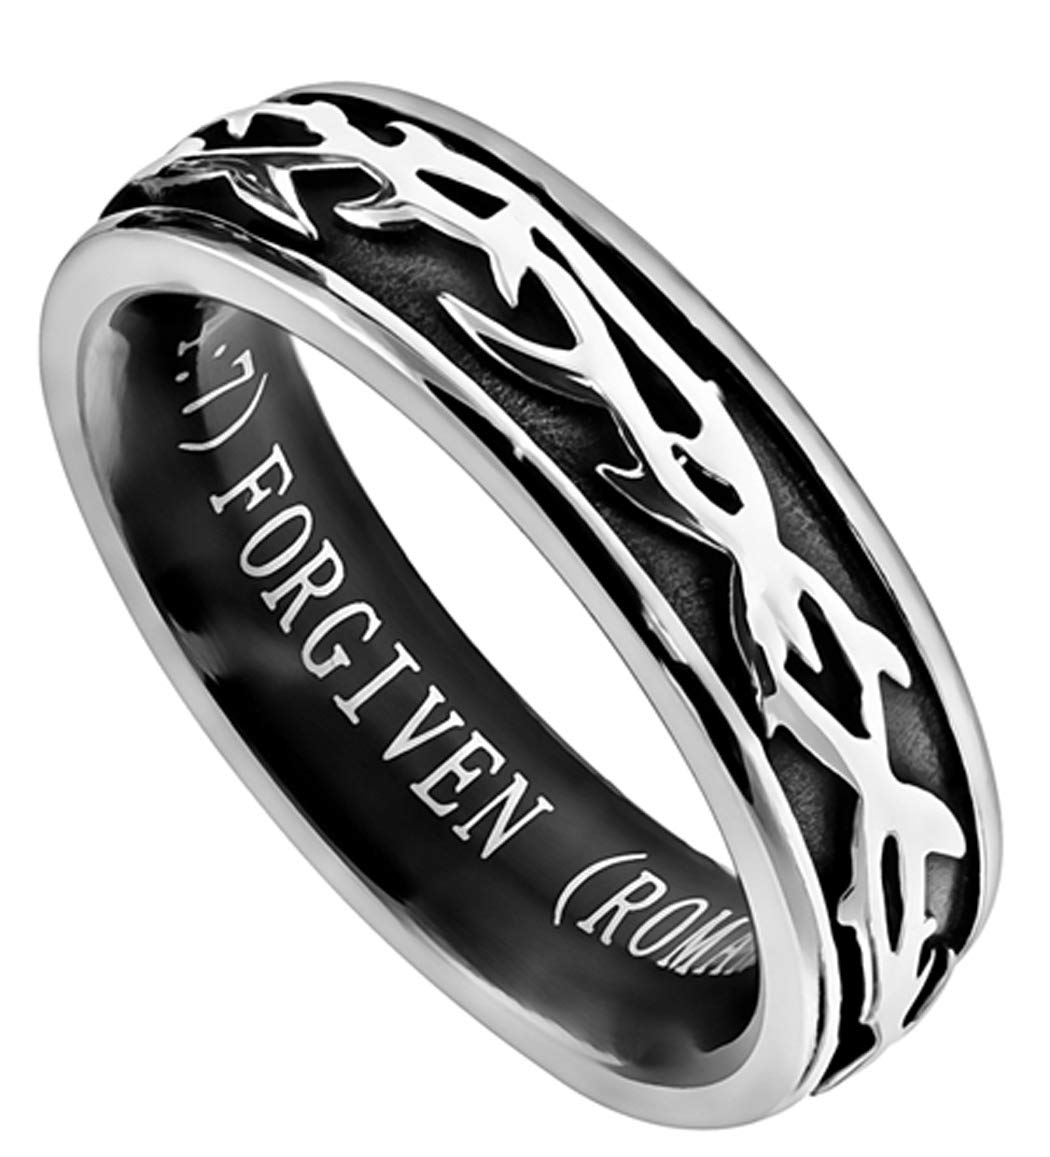 The Quiet Witness K46 Crown of Thorns Forgiven Ring Christian Forgive Scripture Biblical Forgiveness Wedding Band John 3:16 (8)